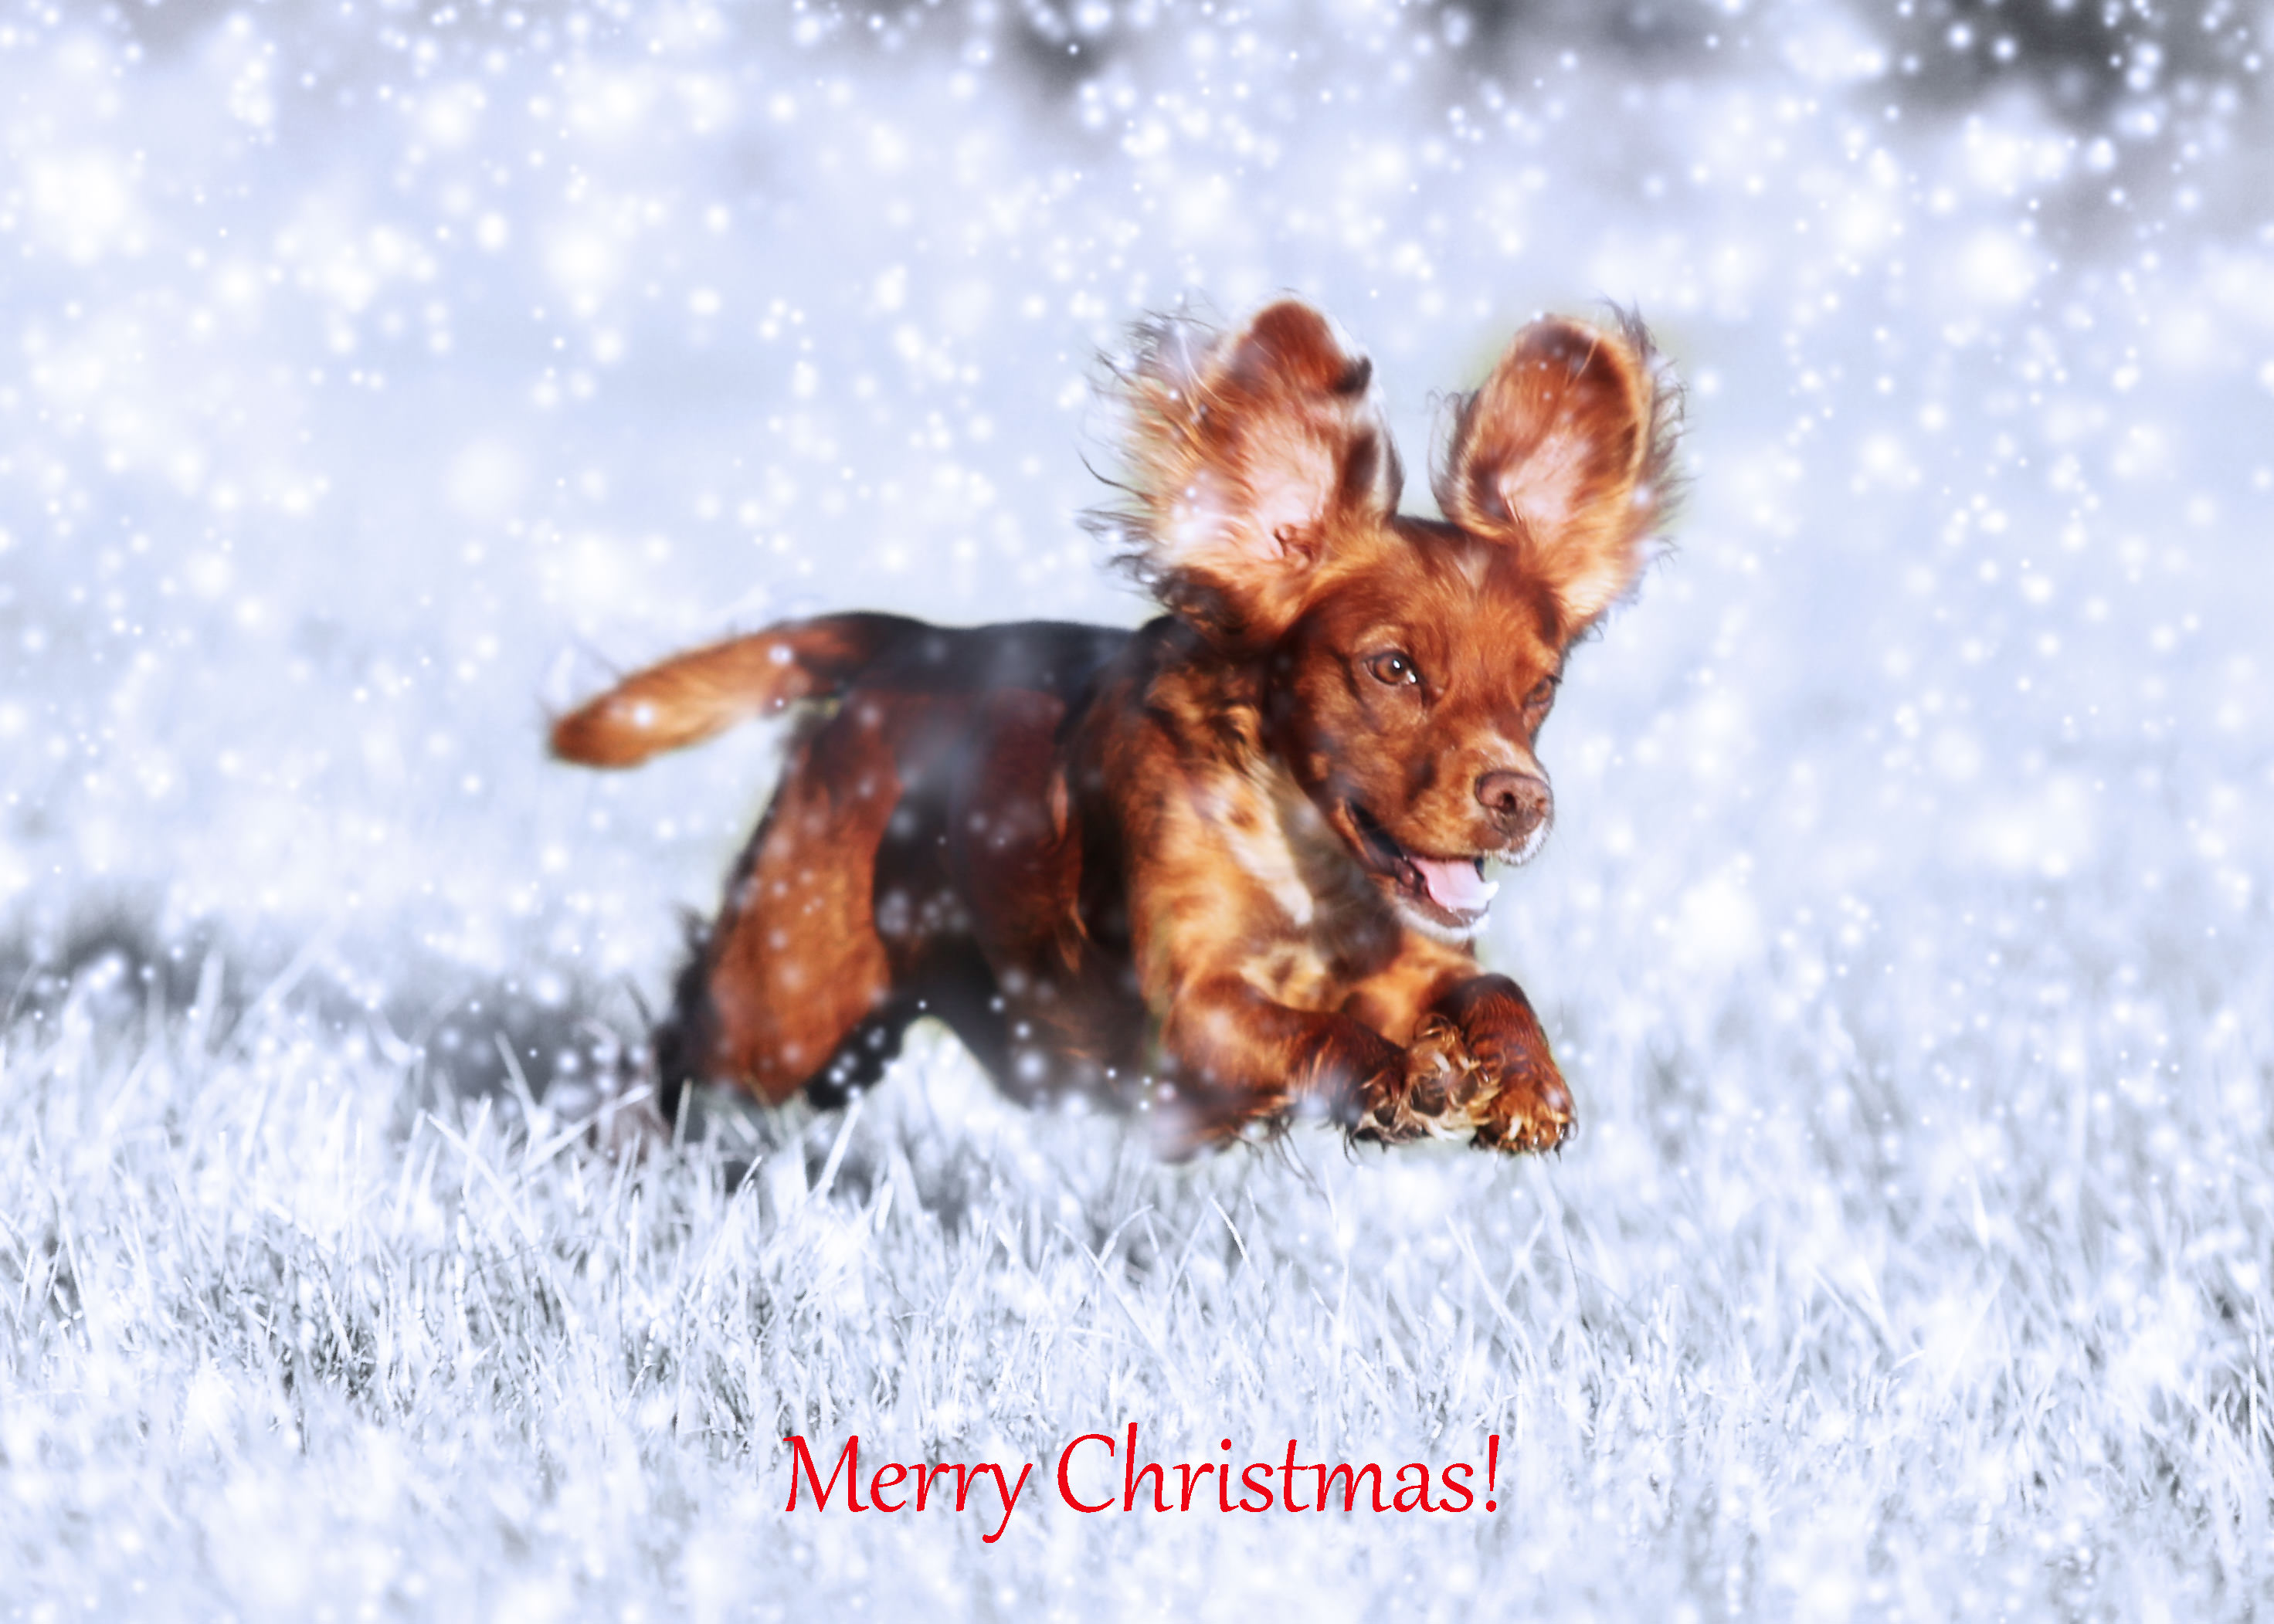 HoofPrints Create your Personalised Christmas Cards Today